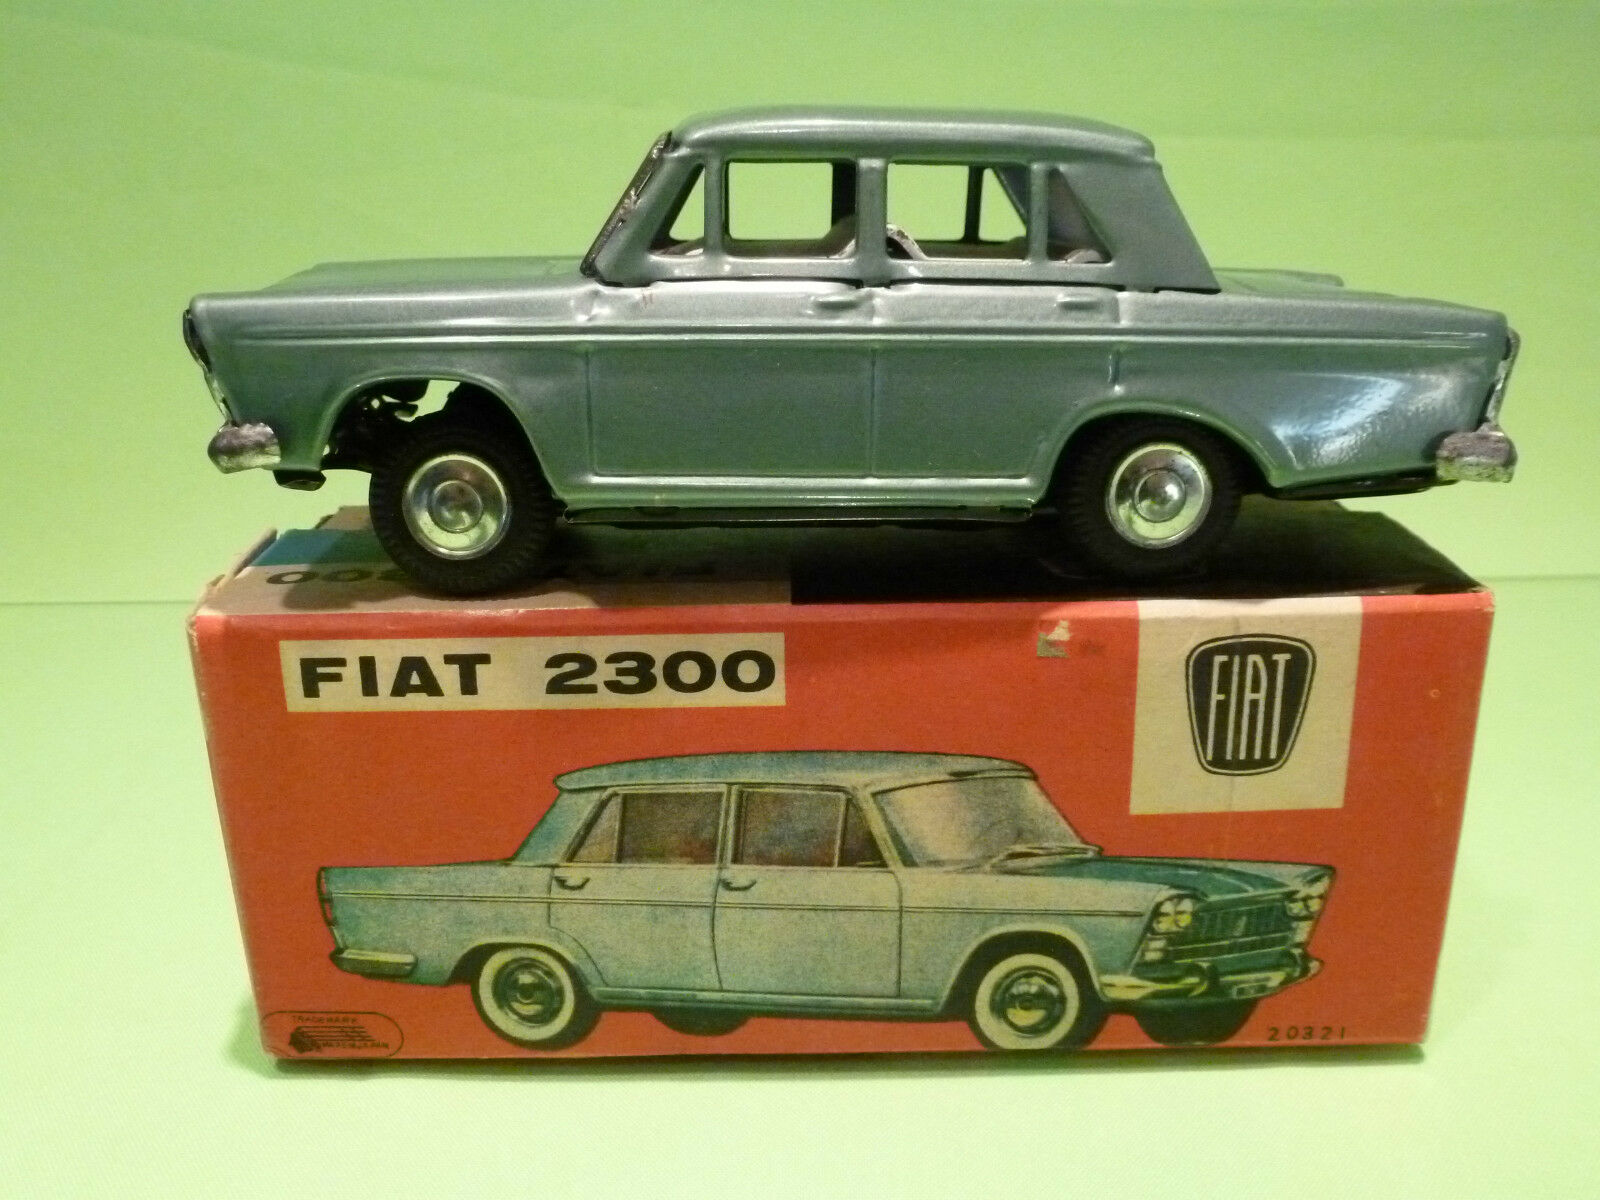 20321  JAPAN  FIAT 2300 - IN ORGINAL BOX - VINTAGE   - IN GOOD  CONDITION